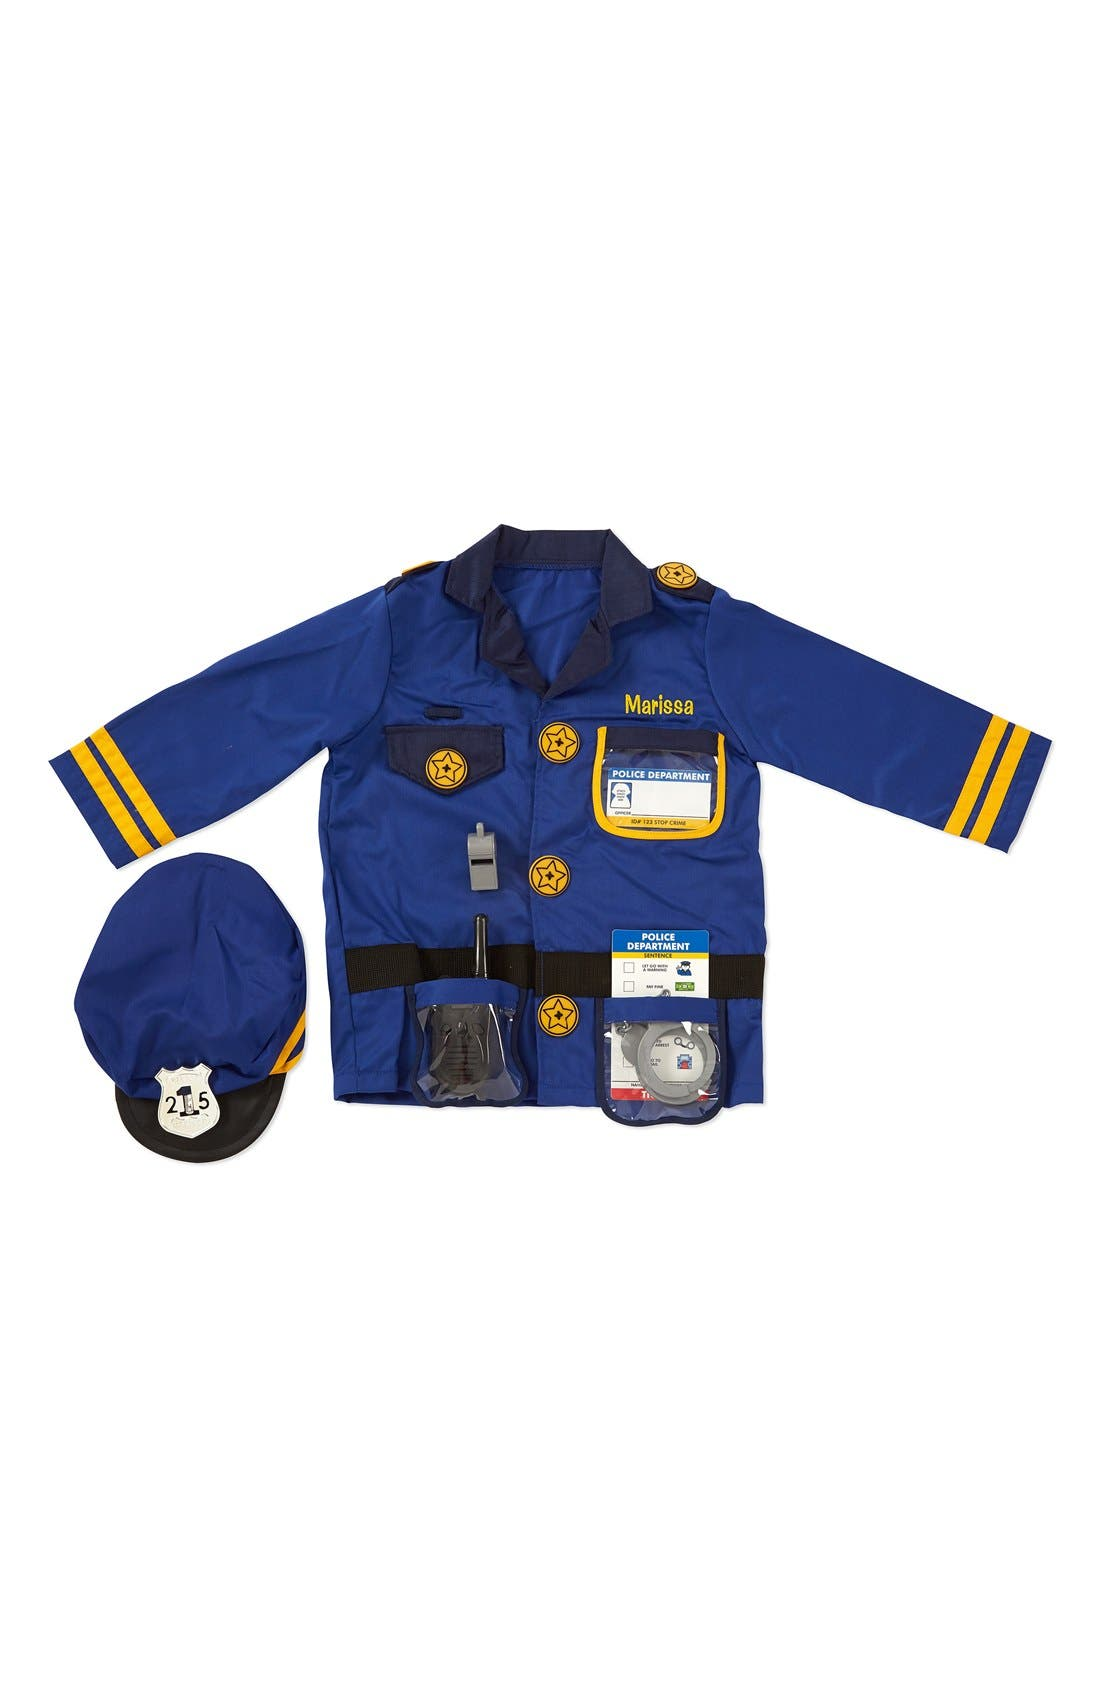 Main Image - Melissa & Doug Personalized Police Officer Costume Set (Little Kid)